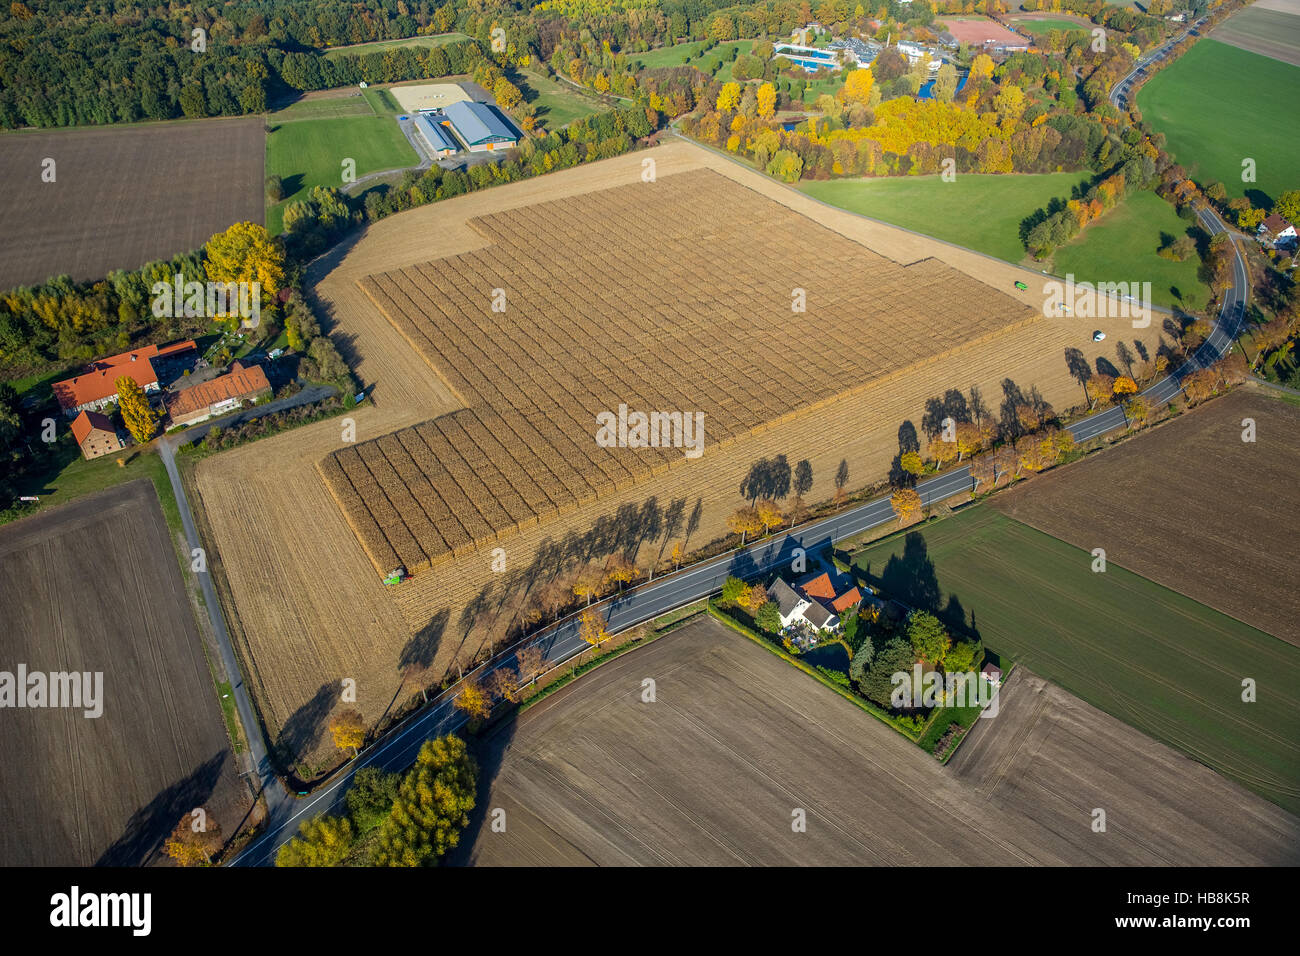 Aerial view, corn crop with scientific support Pelkum, Kamen Street Barbecke, Hamm, Ruhr, Nordrhein-Westfalen, Germany Stock Photo